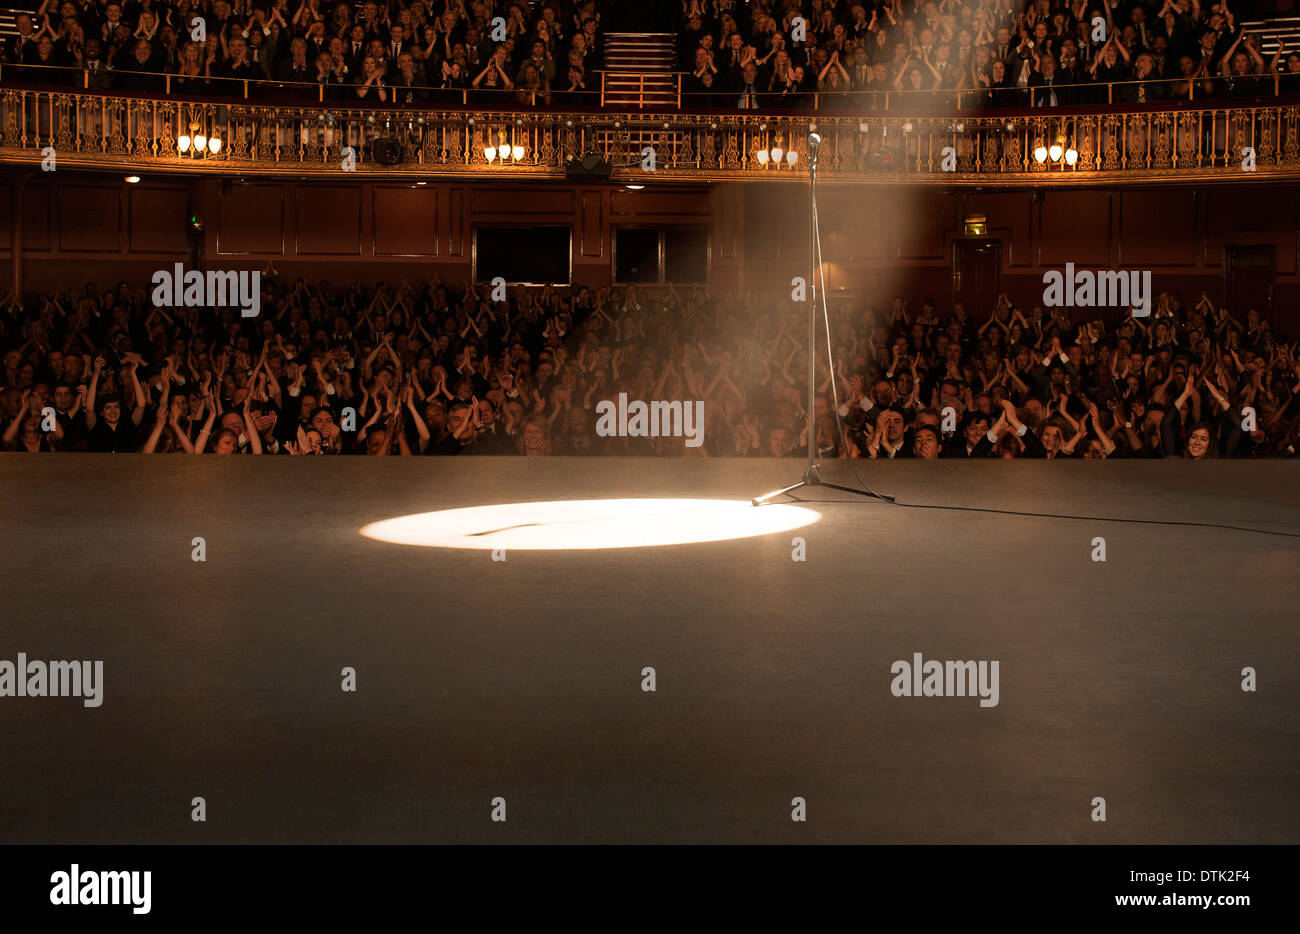 Spotlight shining on stage in theater - Stock Image